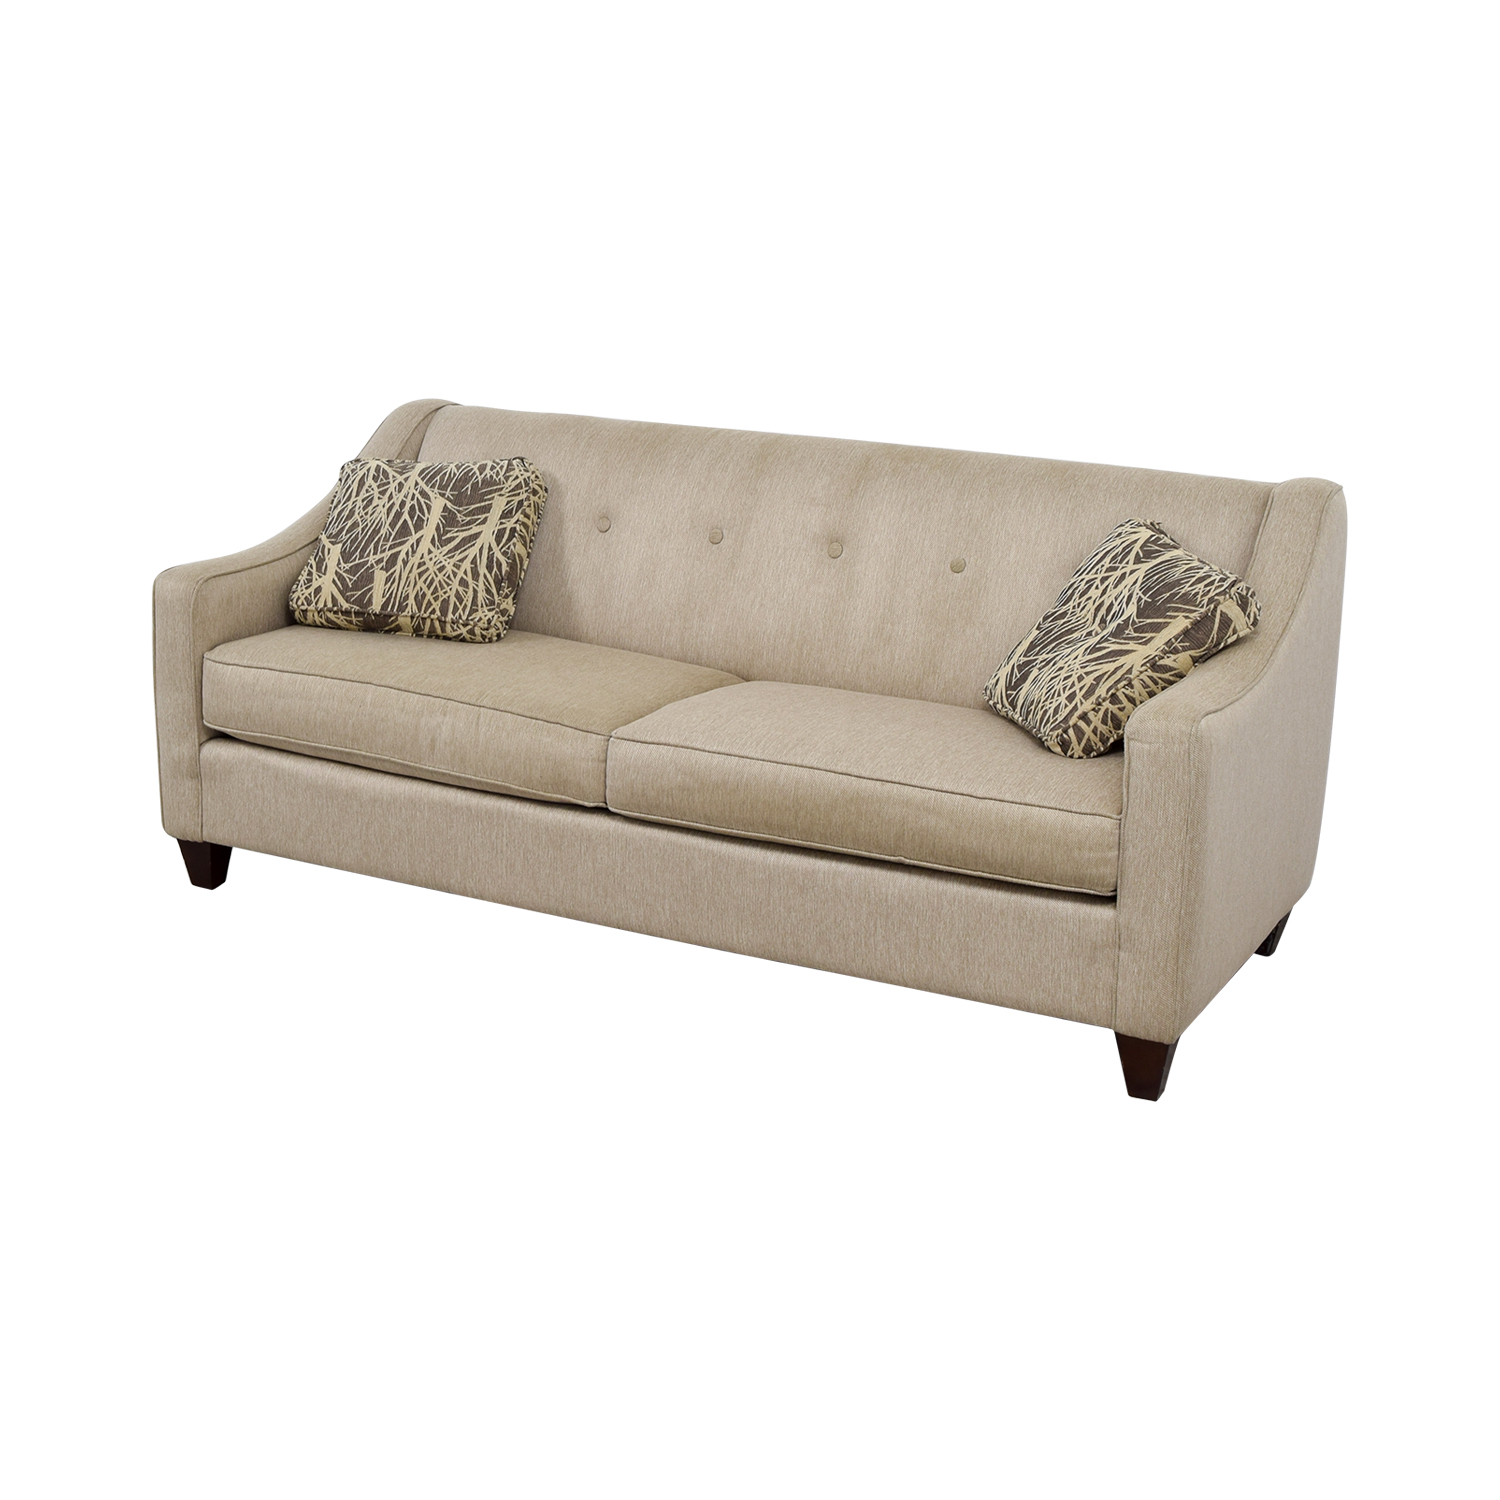 ... buy Star Furniture Colton Sofa Star Furniture Sofas ... - 73% OFF - Star Furniture Star Furniture Colton Sofa / Sofas